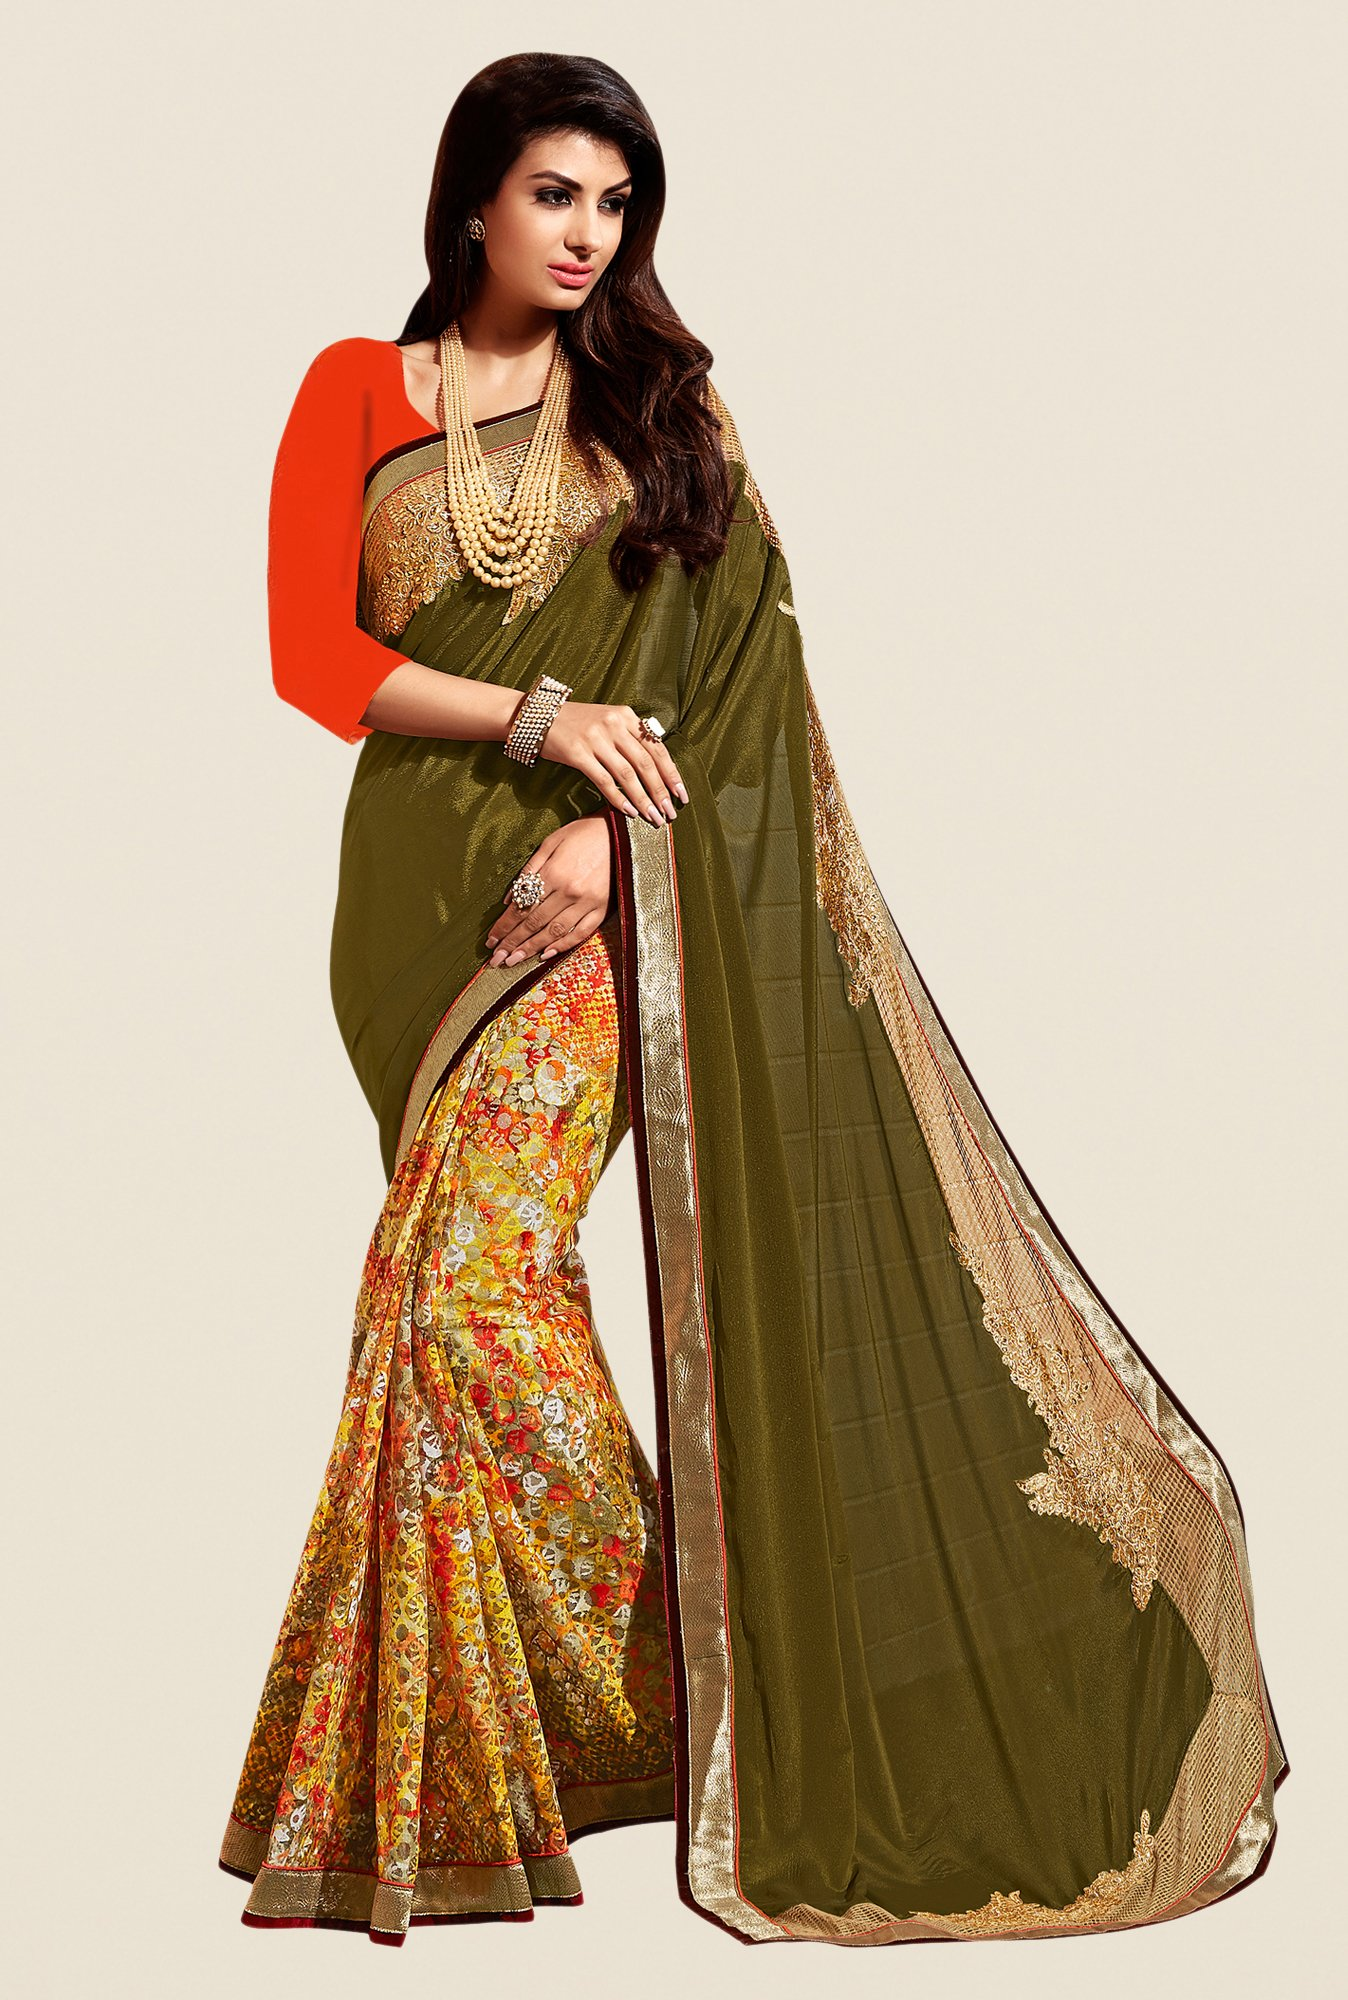 Shonaya Olive & Yellow Georgette & Jacquard Saree